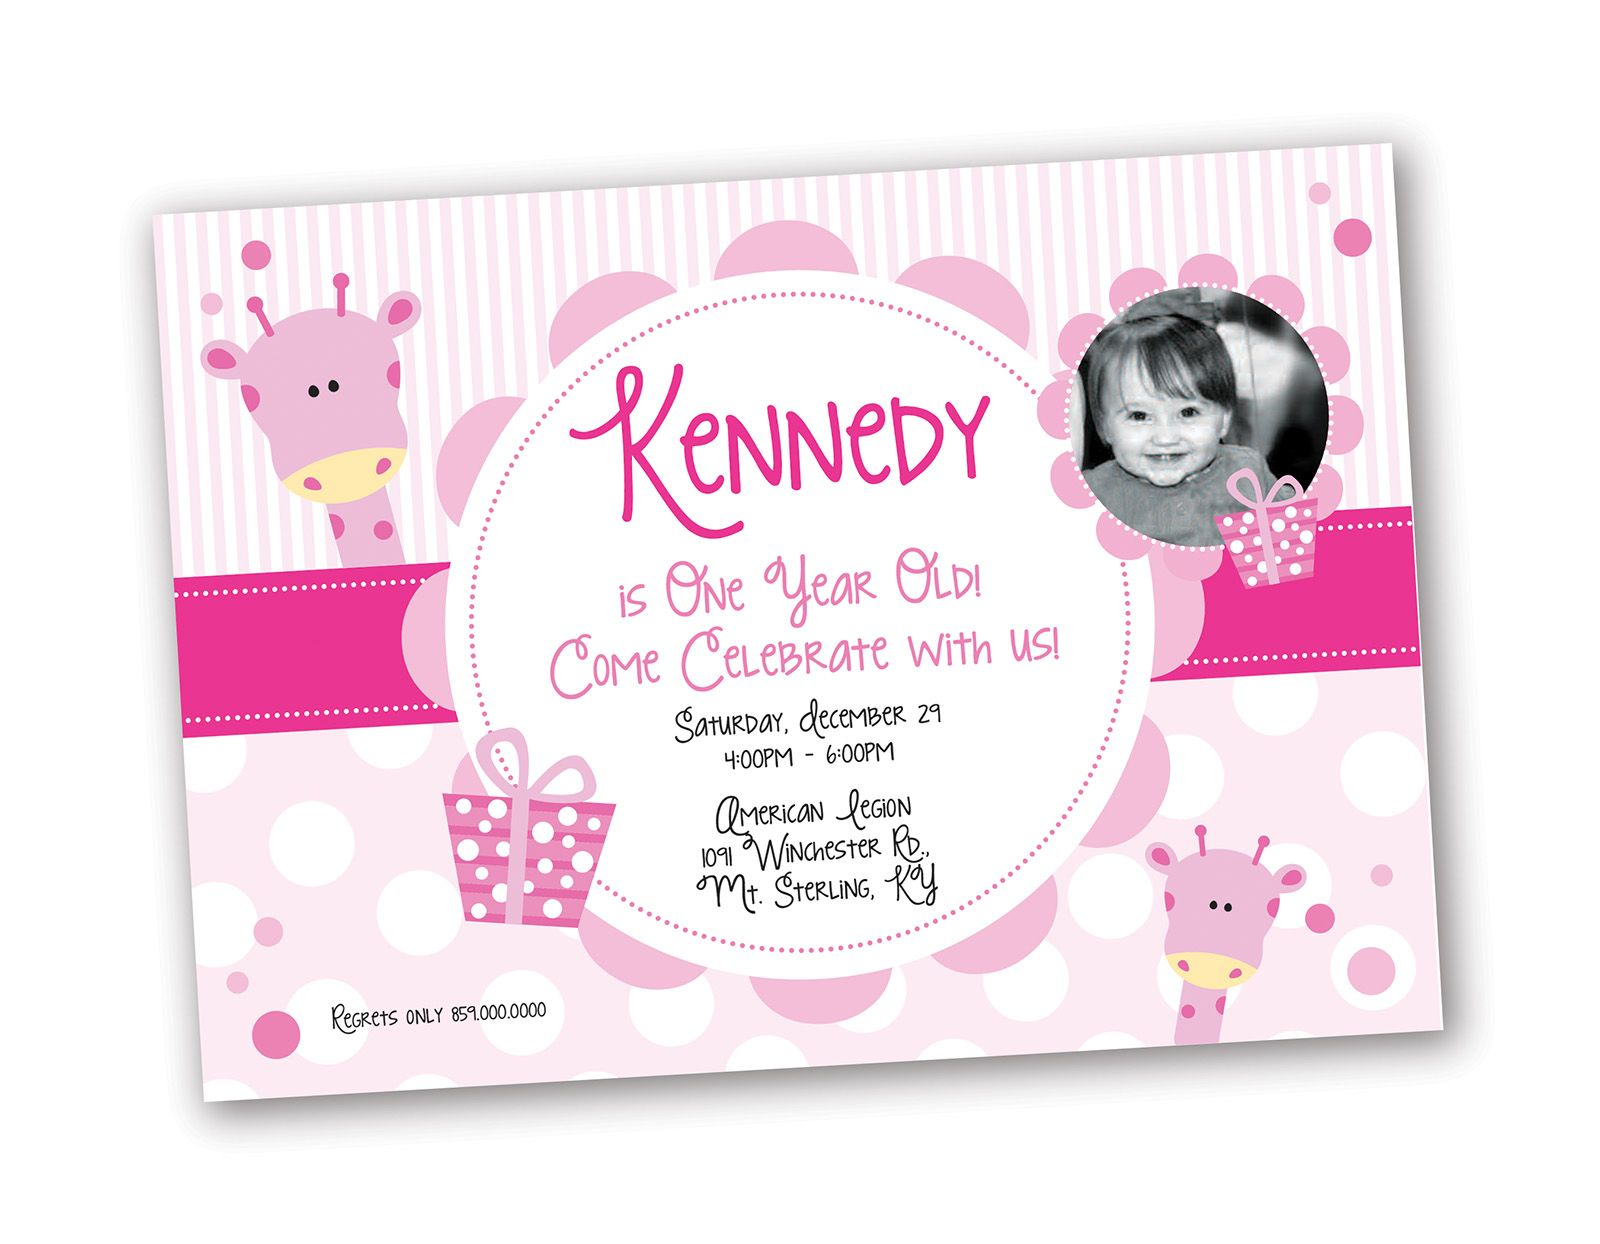 1 year old girl birthday invitation giraffe theme design designs 1 year old girl birthday invitation giraffe theme design stopboris